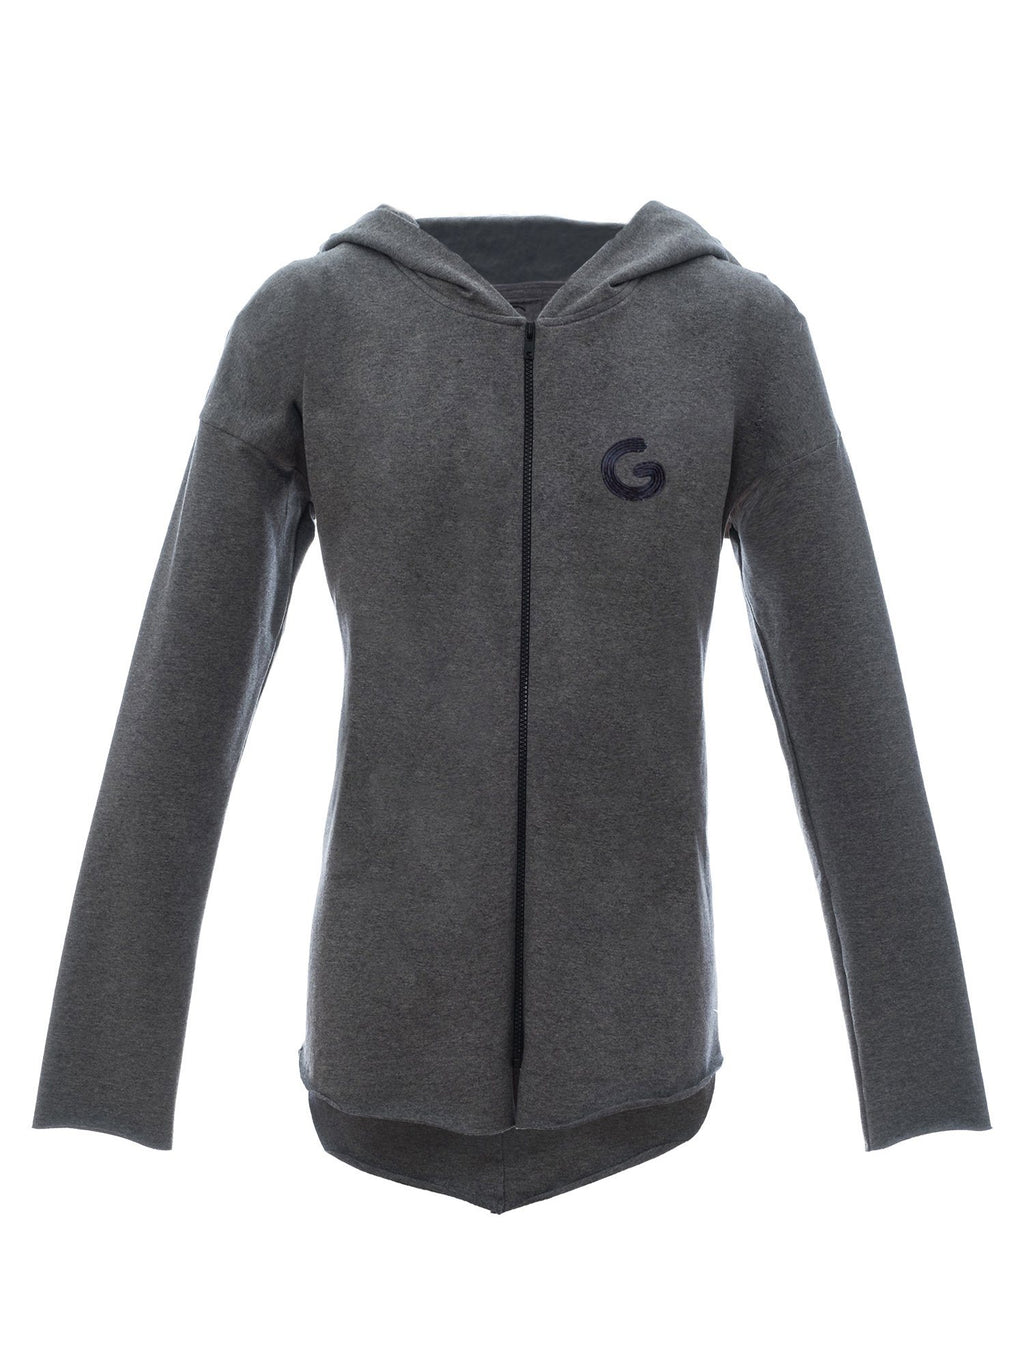 TheG Essential Riri Zip Hoody // moon